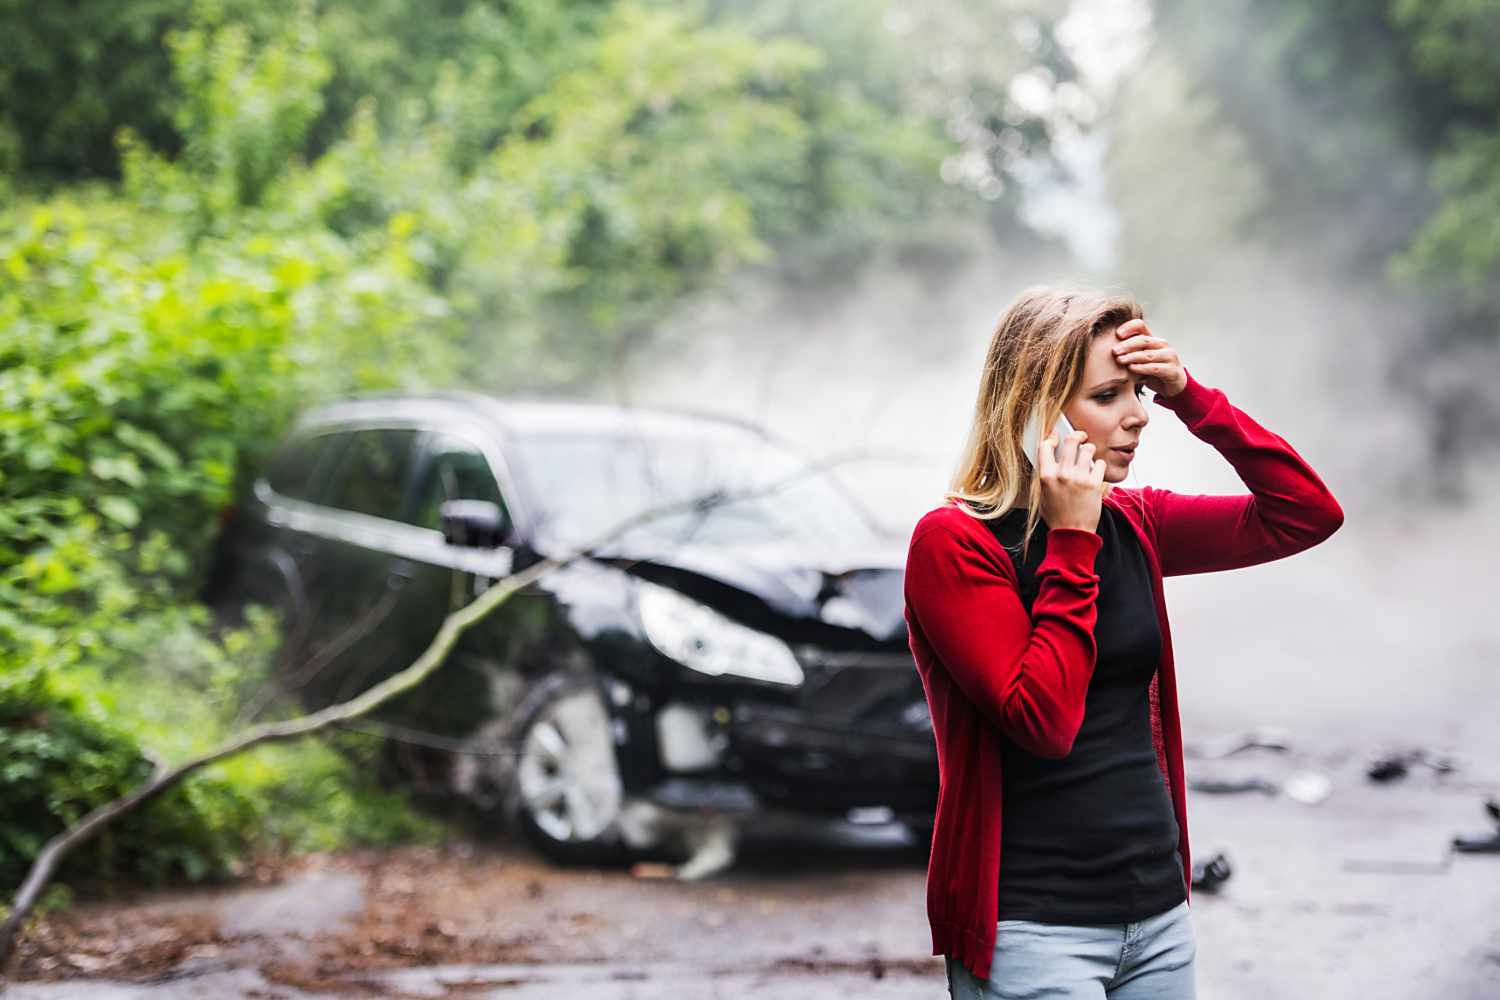 a young woman with smartphone by the damaged car